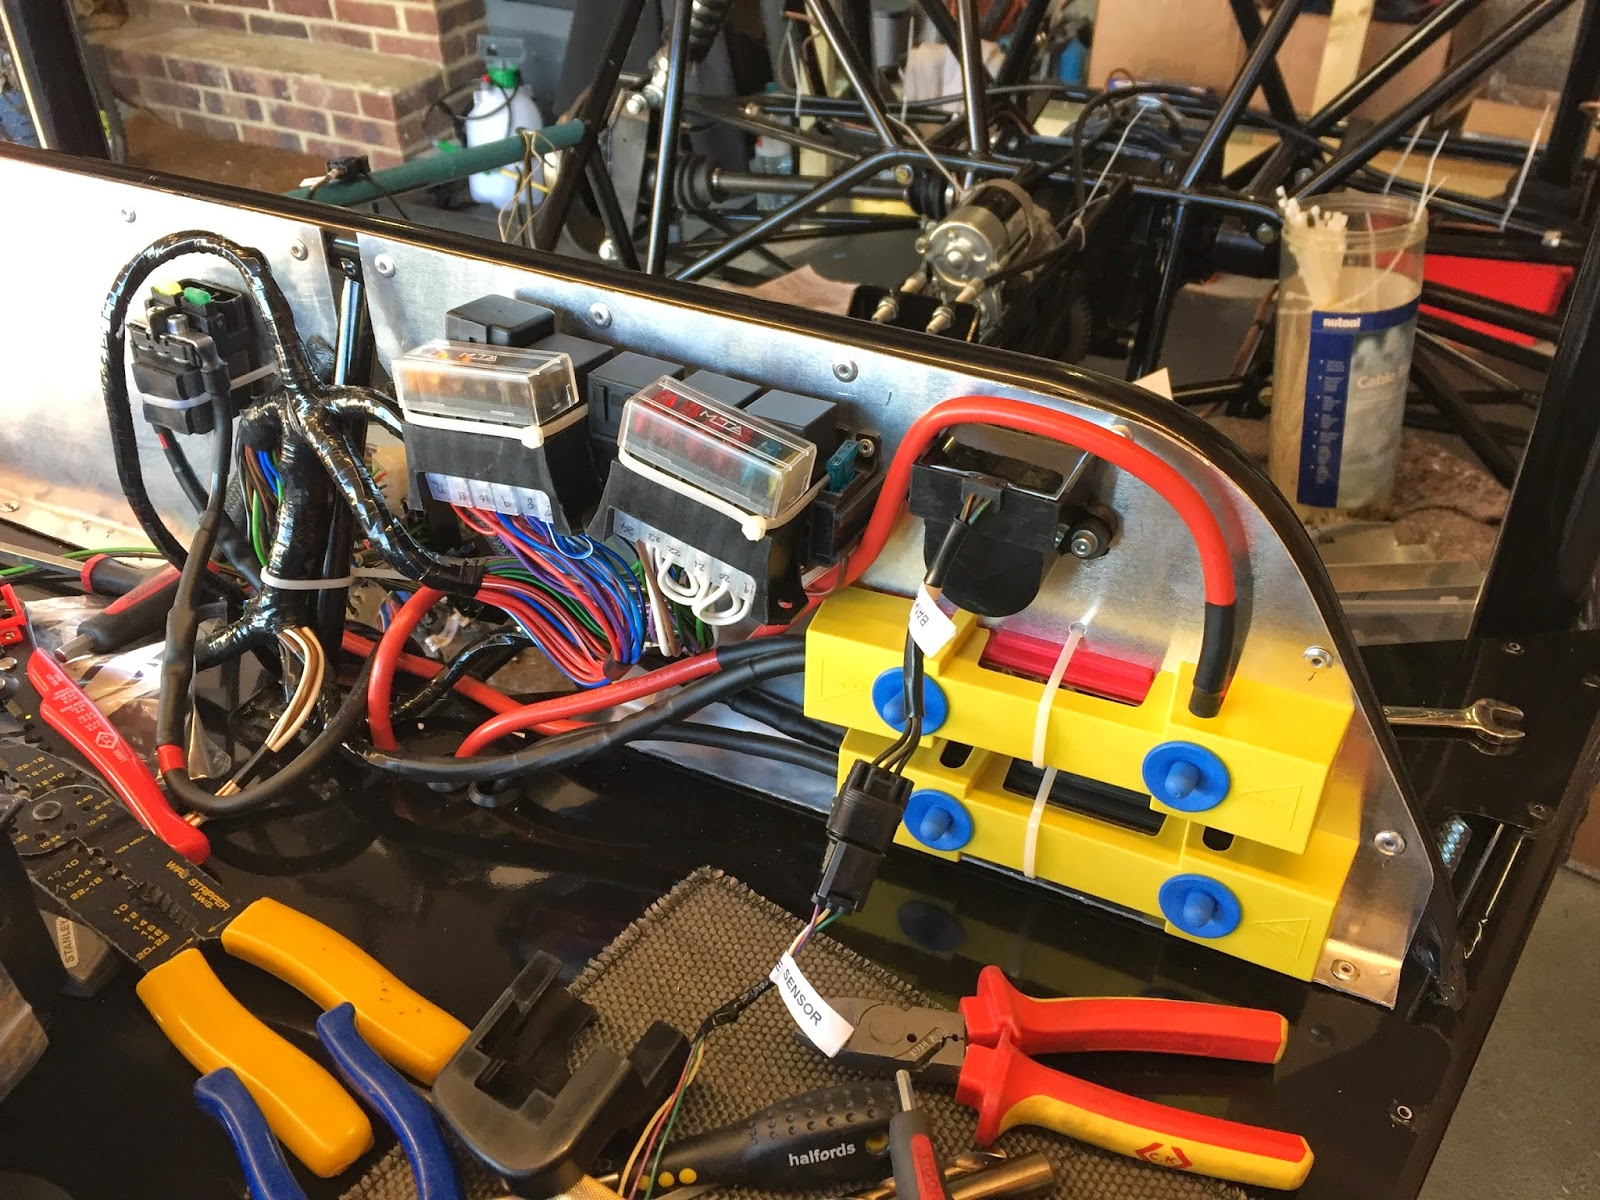 Knobby Mnr Vortx Cbr1000rr Blade Build More Wiring Car Fuse Box Short Not That Happy With The Location But Cables Are So Its Difficult To Mount Then In Any Other Position